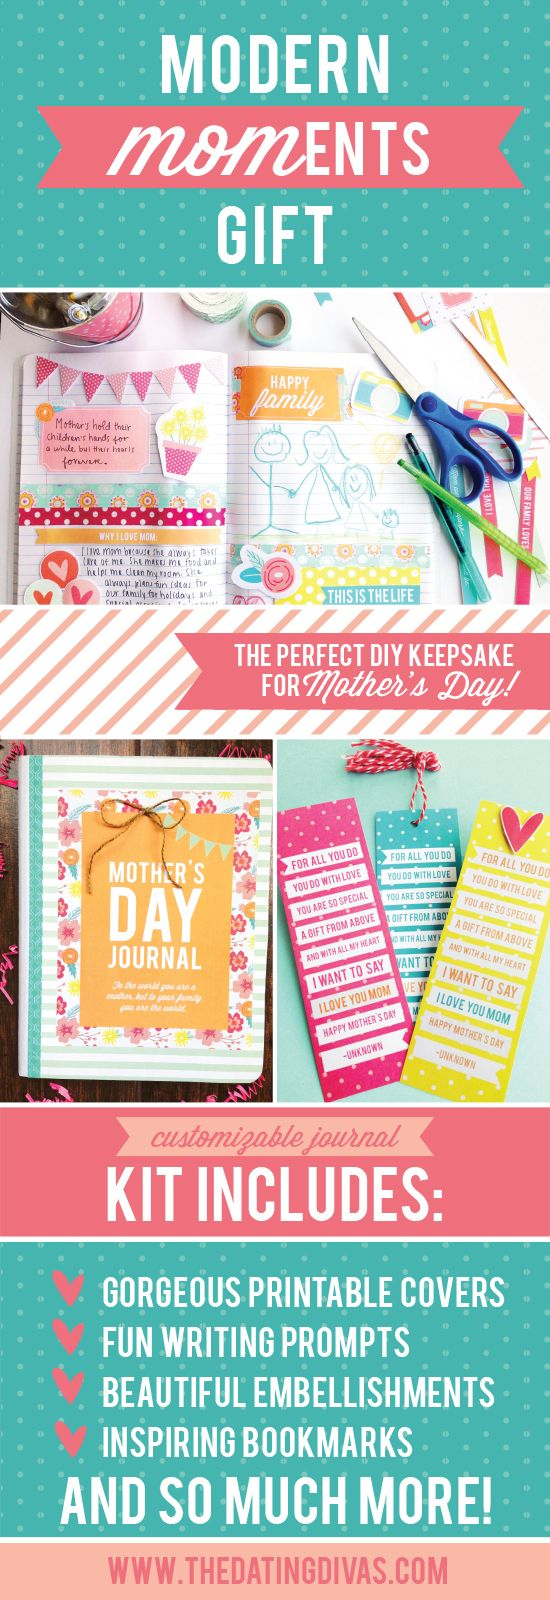 I can't wait to get started creating my own ADORABLE Mother's Day Journal for Mom! www.TheDatingDivas.com